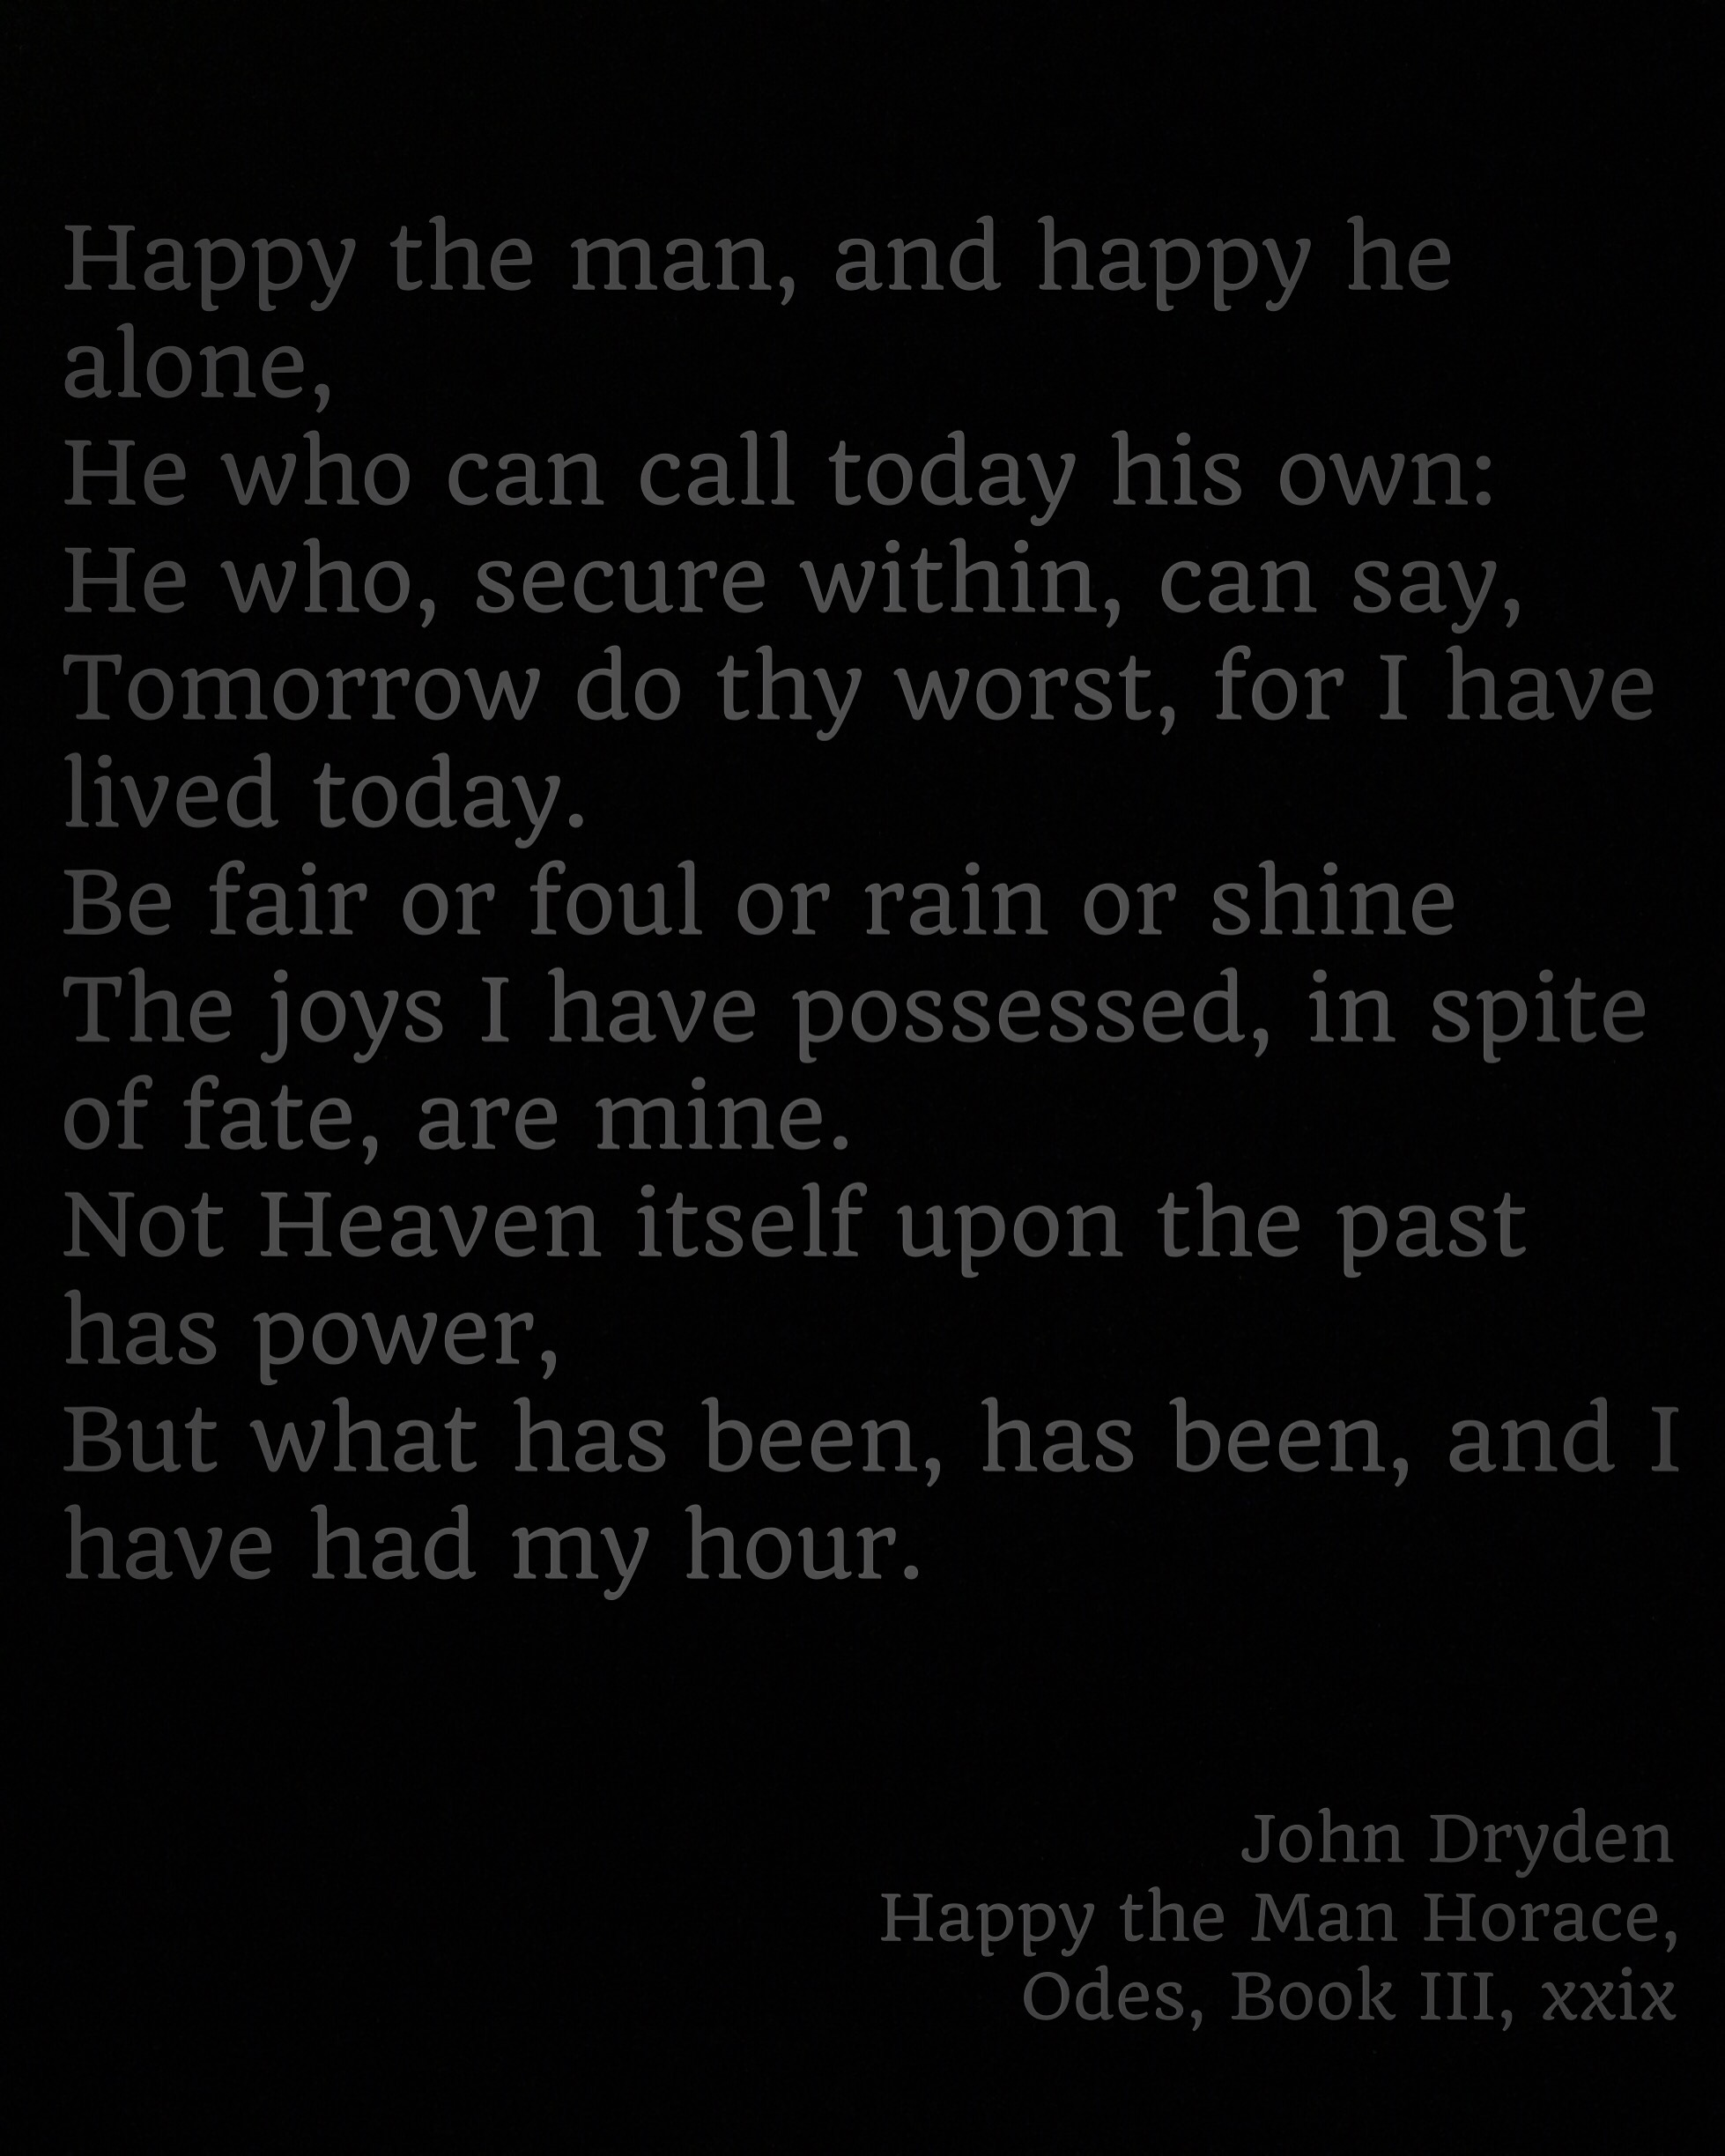 poem reading: Happy the man, and happy he alone, He who can call today his own: He who, secure within, can say, Tomorrow do thy worst, for I have lived today. Be fair or foul or rain or shine The joys I have possessed, in spite of fate, are mine. Not Heaven itself upon the past has power, But what has been, has been, and I have had my hour.